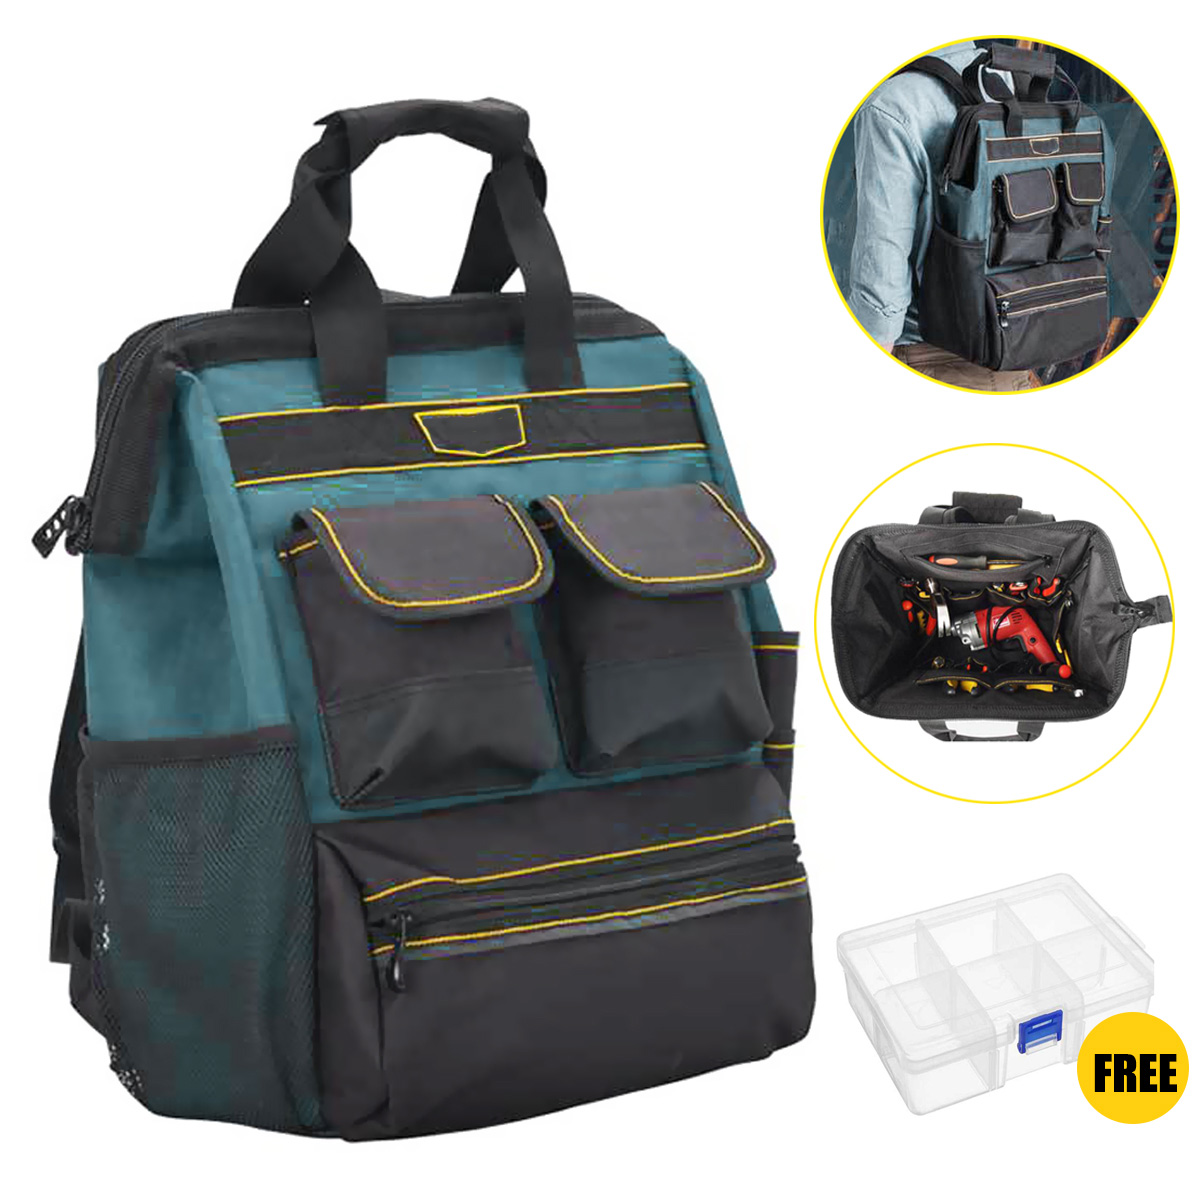 Double Shoulder Oxford Cloth Electrician Tool Backpack High-density Multifunction 21 Pockets Large Capacity Maintenance Tool Bag 27 bags large capacity electrician oxford tools bag waterproof single shoulder multifunction repair thicken instrument case